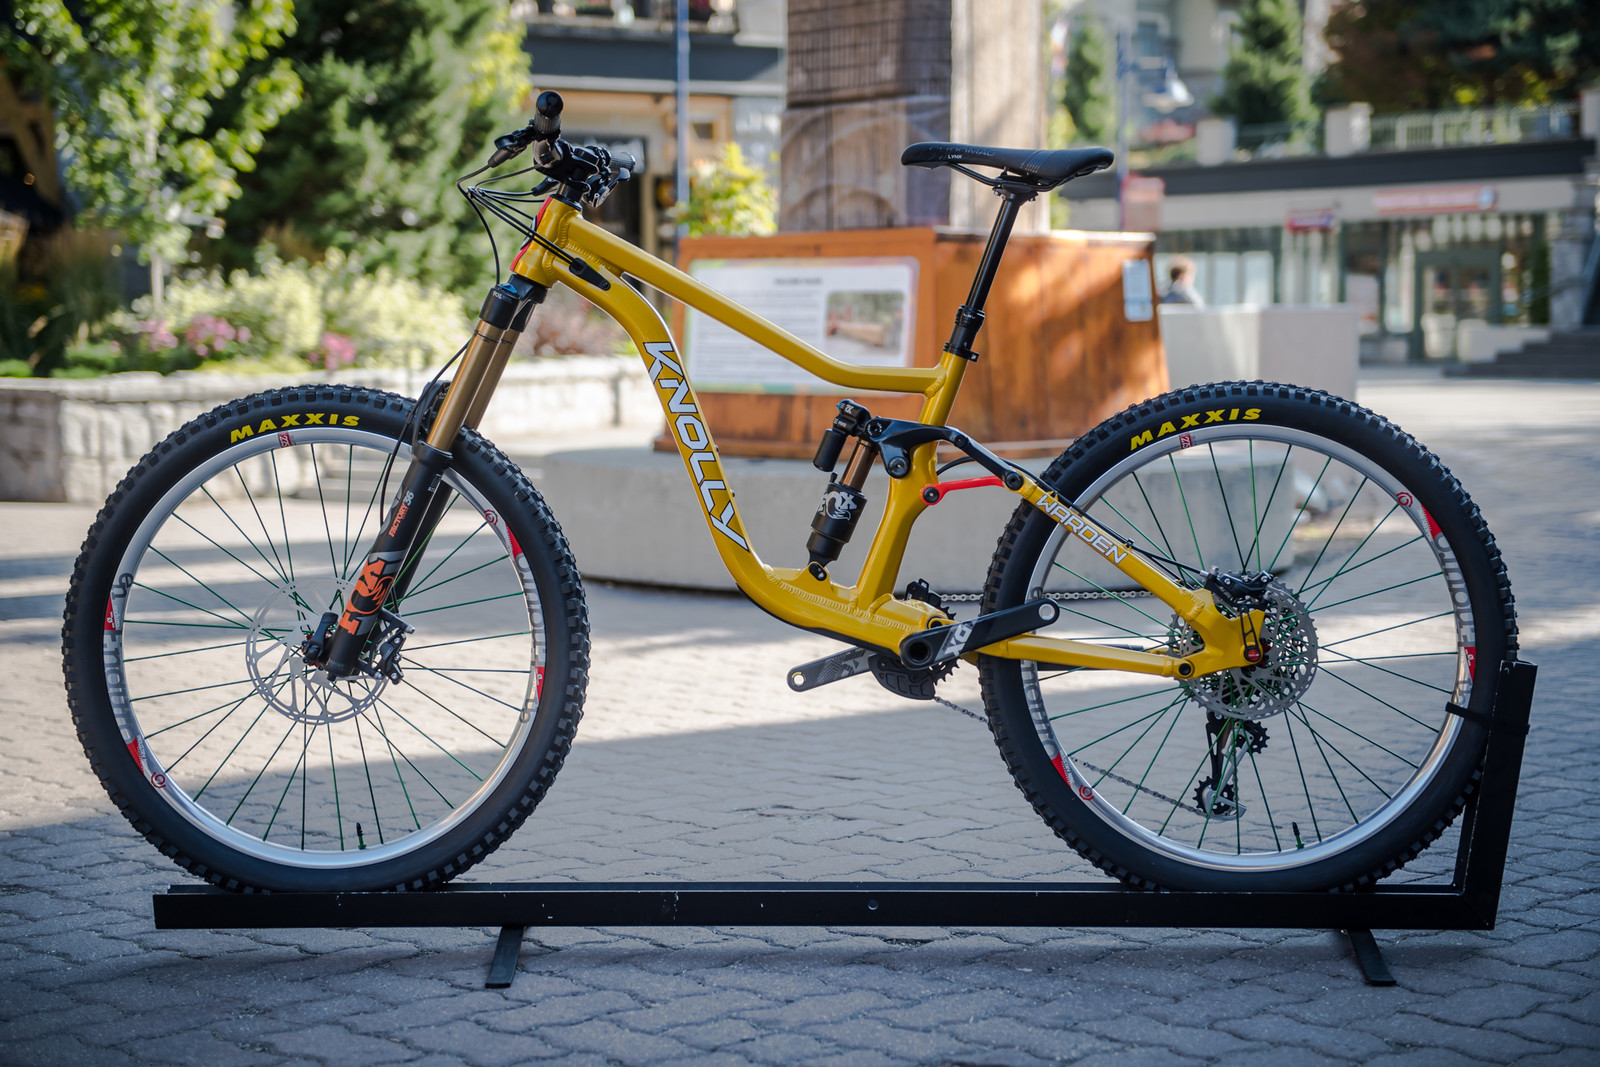 All-New 2020 Knolly Warden - PIT BITS - 2019 Crankworx Whistler Bikes and Tech - Mountain Biking Pictures - Vital MTB